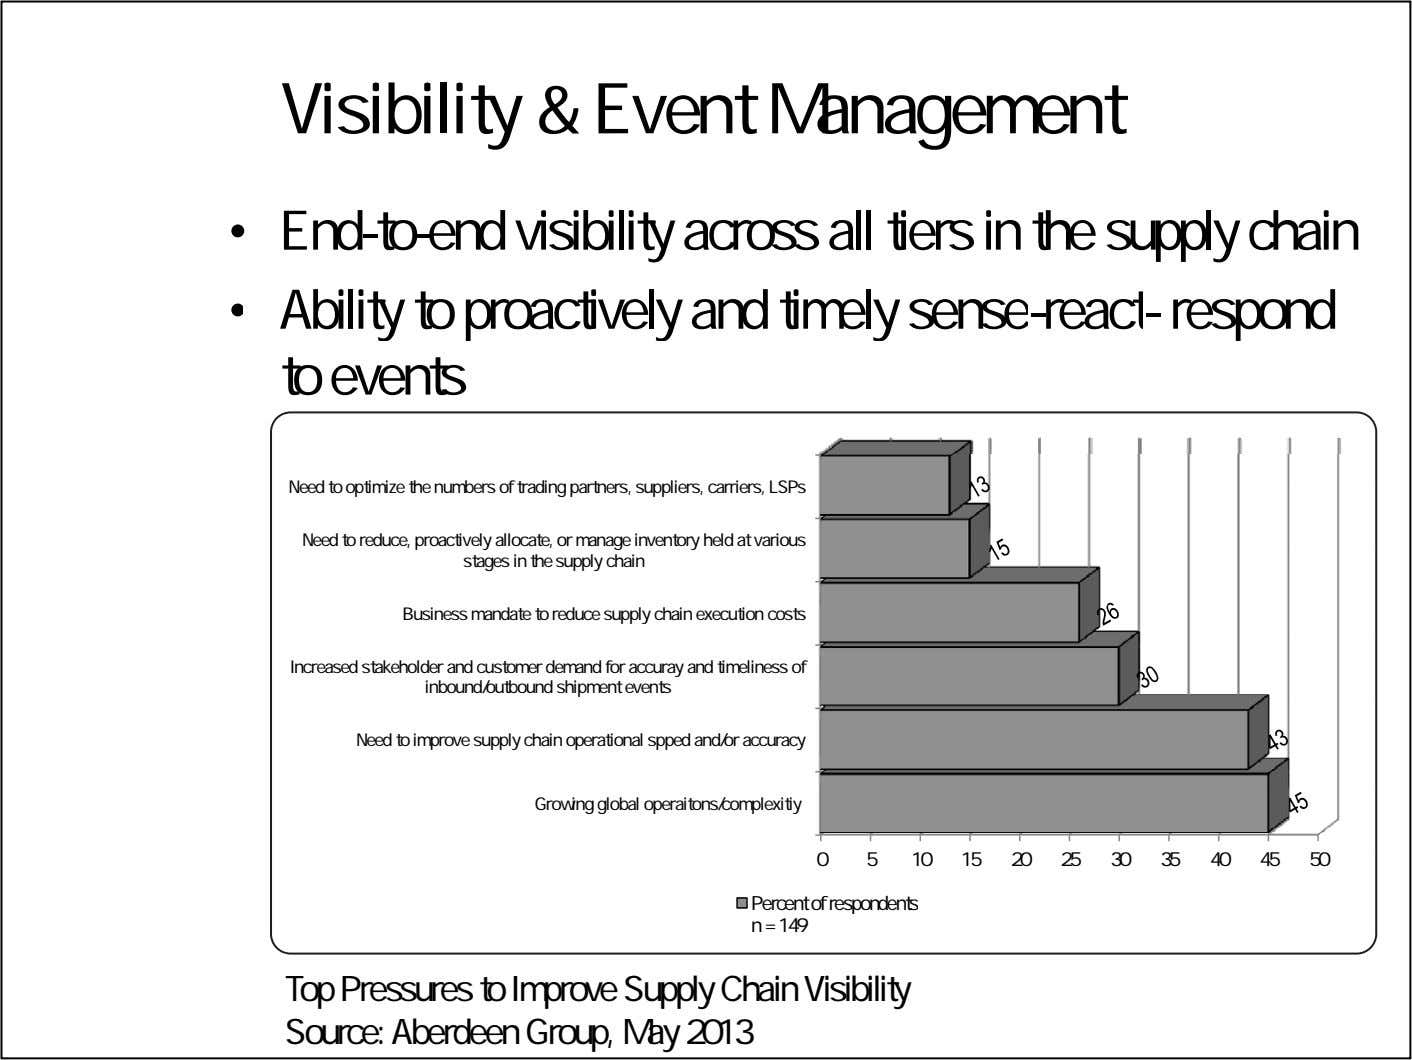 Visibility & Event Management • End-to-end visibility across all tiers in the supply chain •